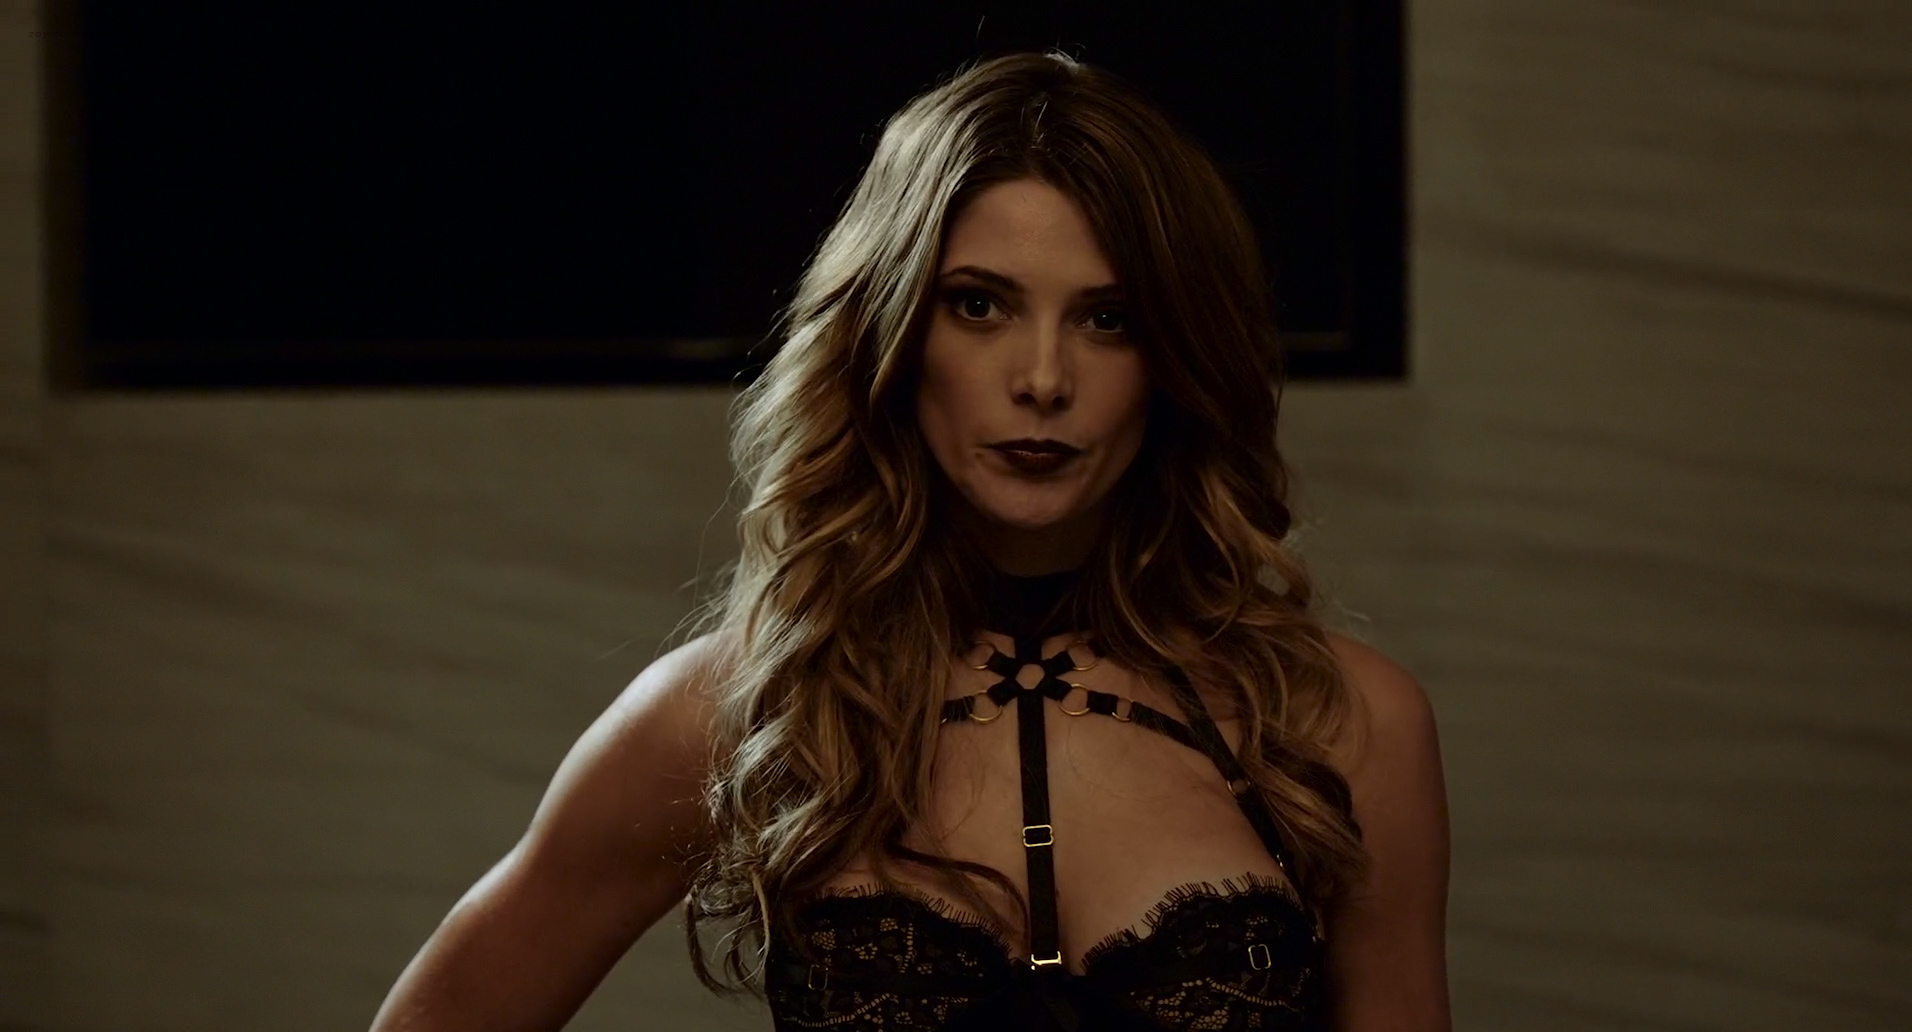 Ashley Greene hot dominatrix Alexis Knapp sexy other's hot and nude - Urge (2016) HD 1080p (1)